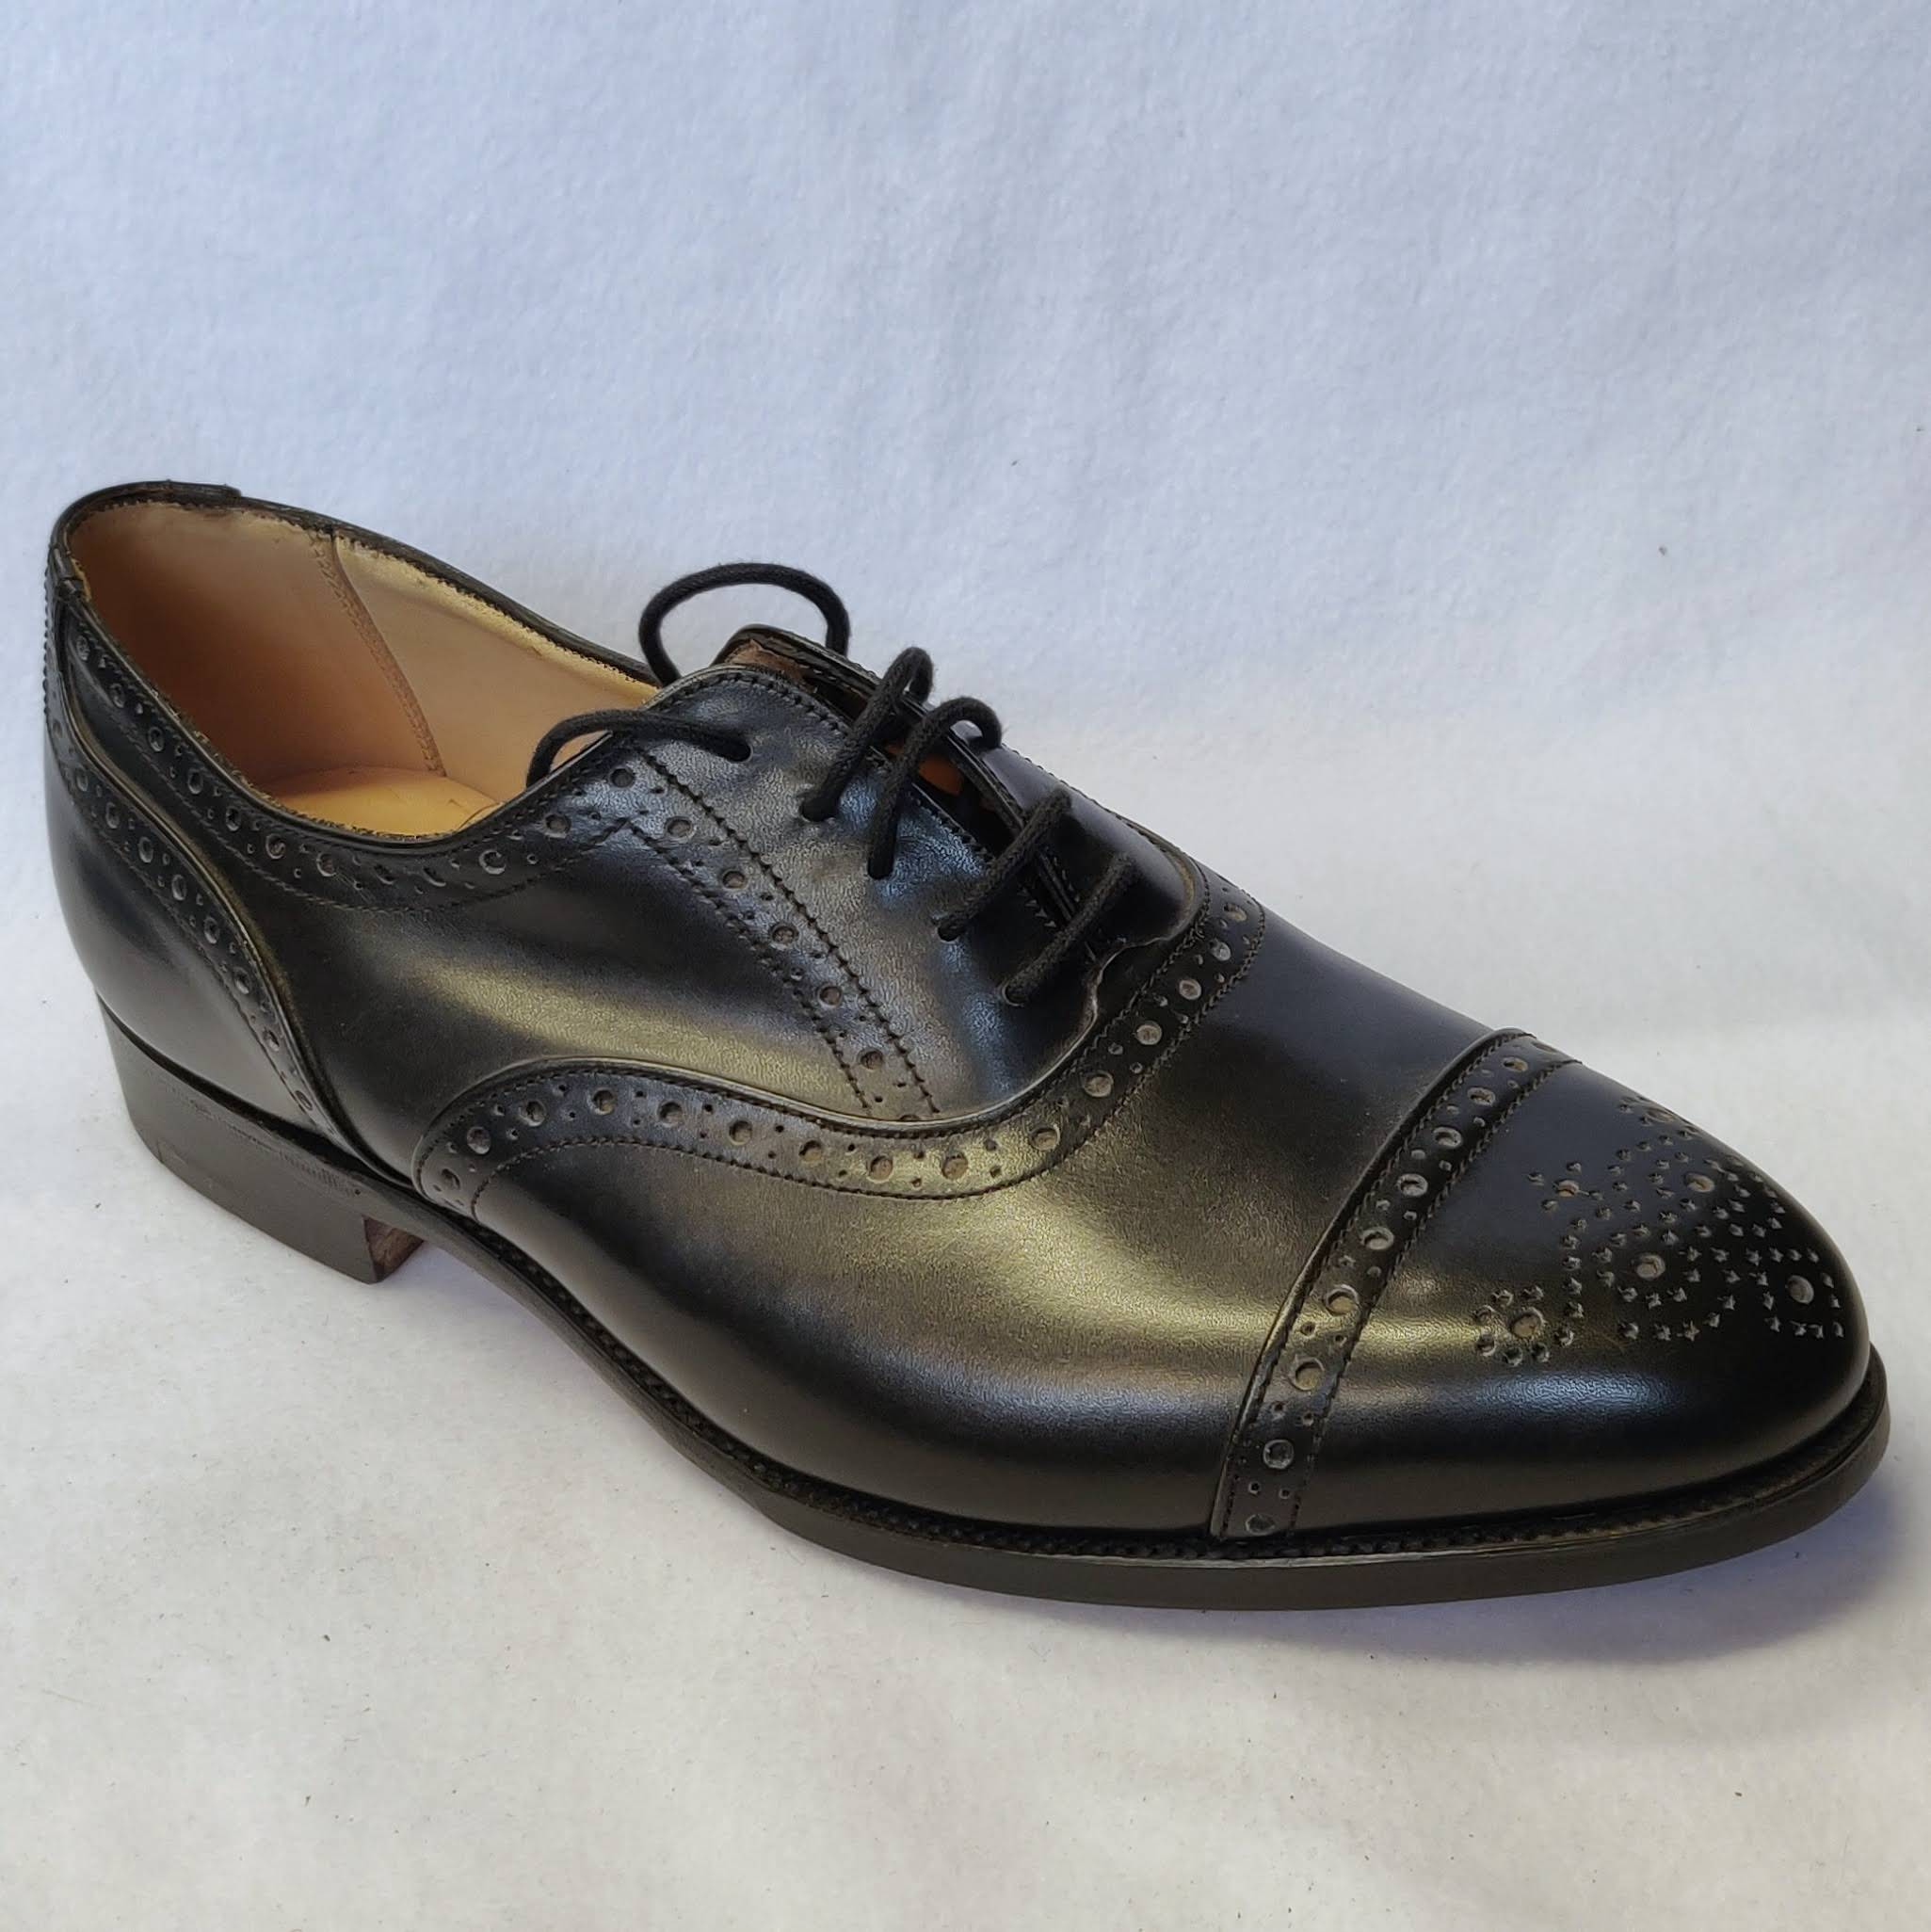 Gents Trickers Cambridge Black Half Brogues